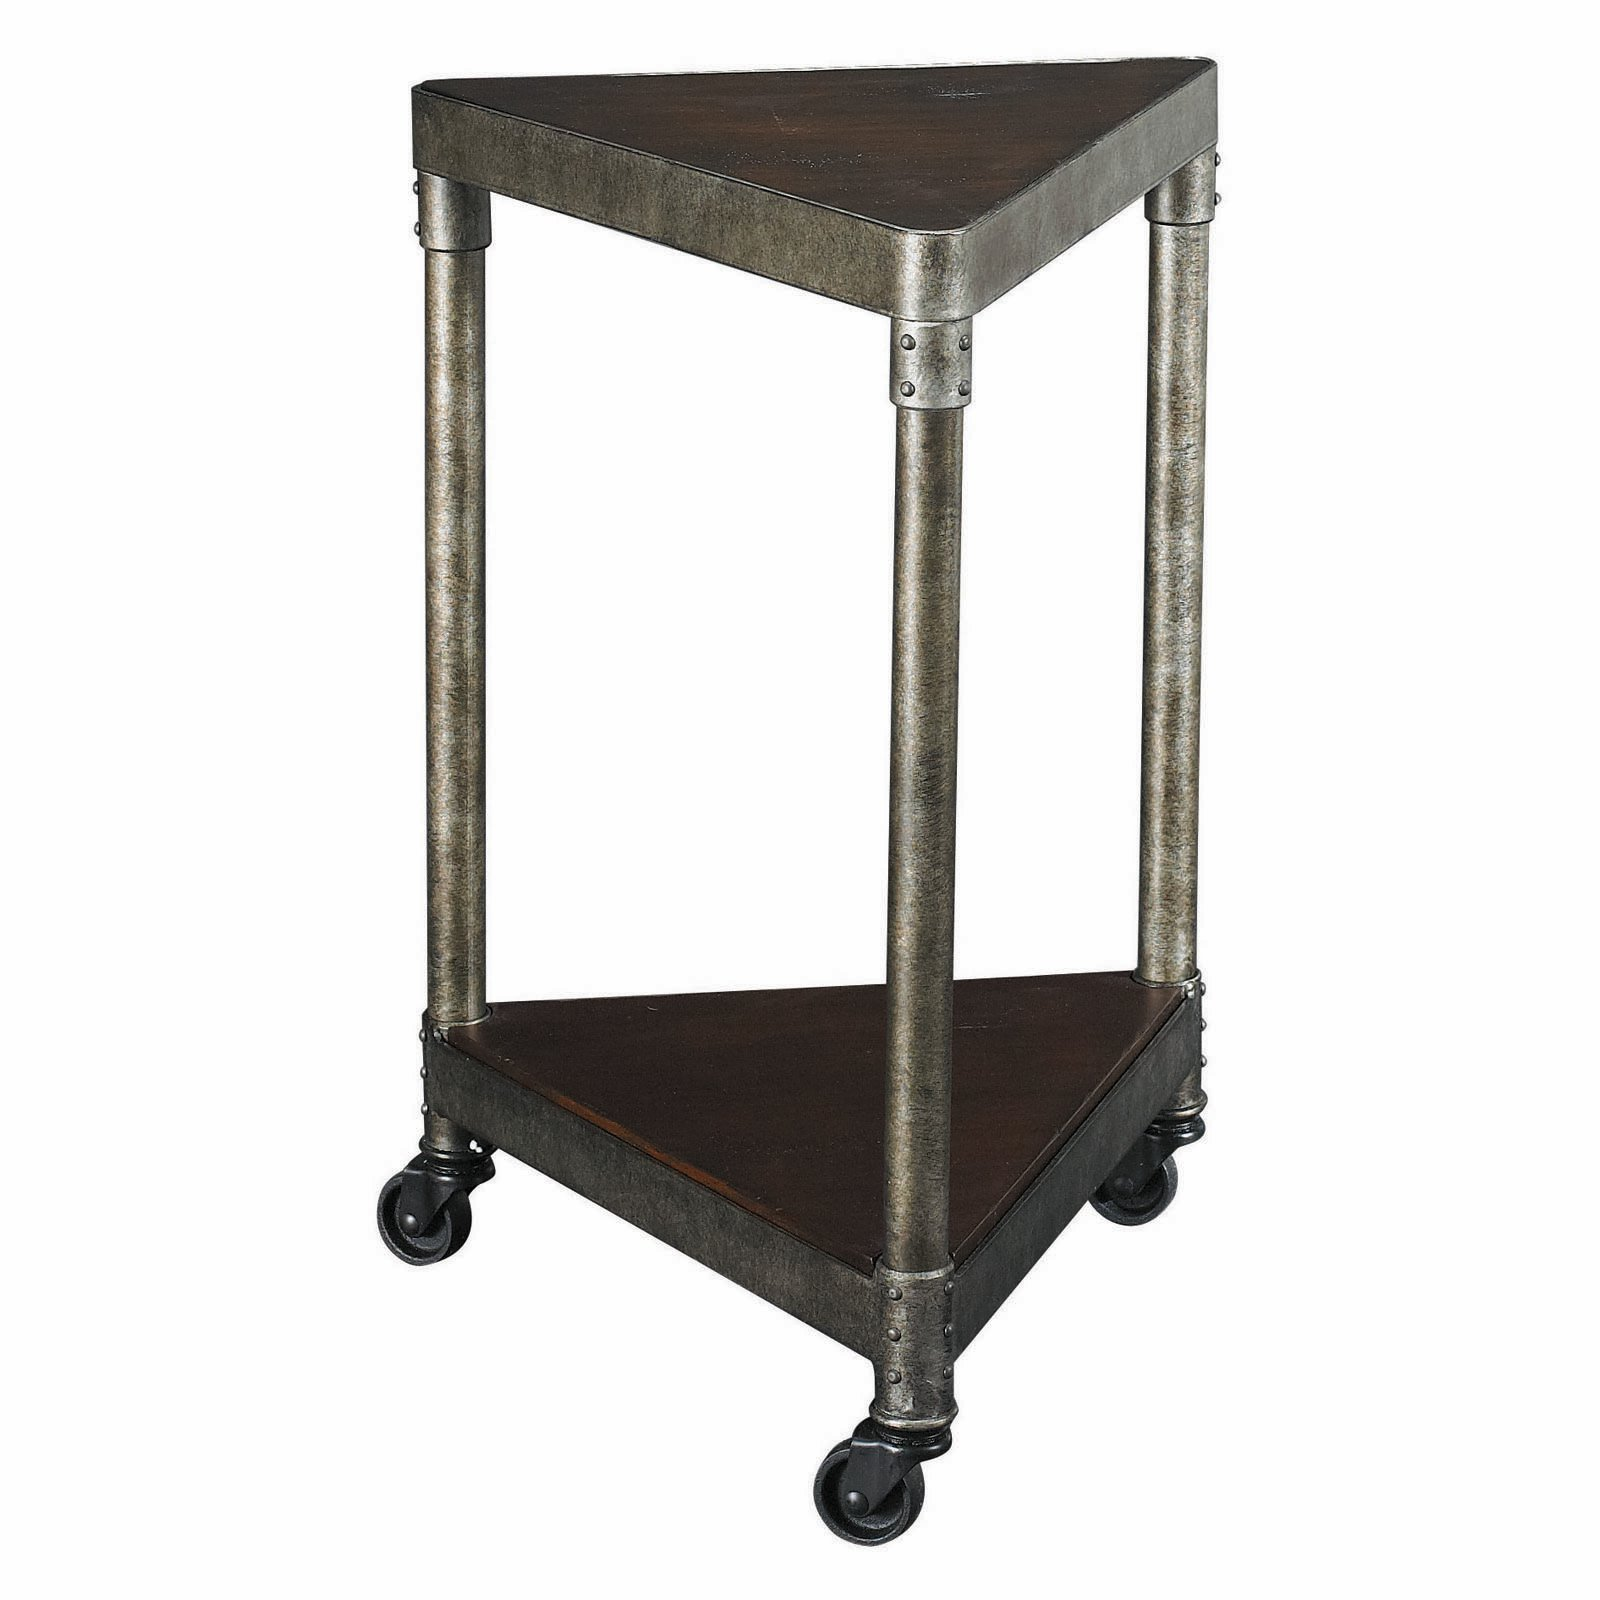 small corner accent table with drawer aruza furniture masculine triangle wooden and metal materials design wheel ideas awesome using not for inch round holiday tablecloth long